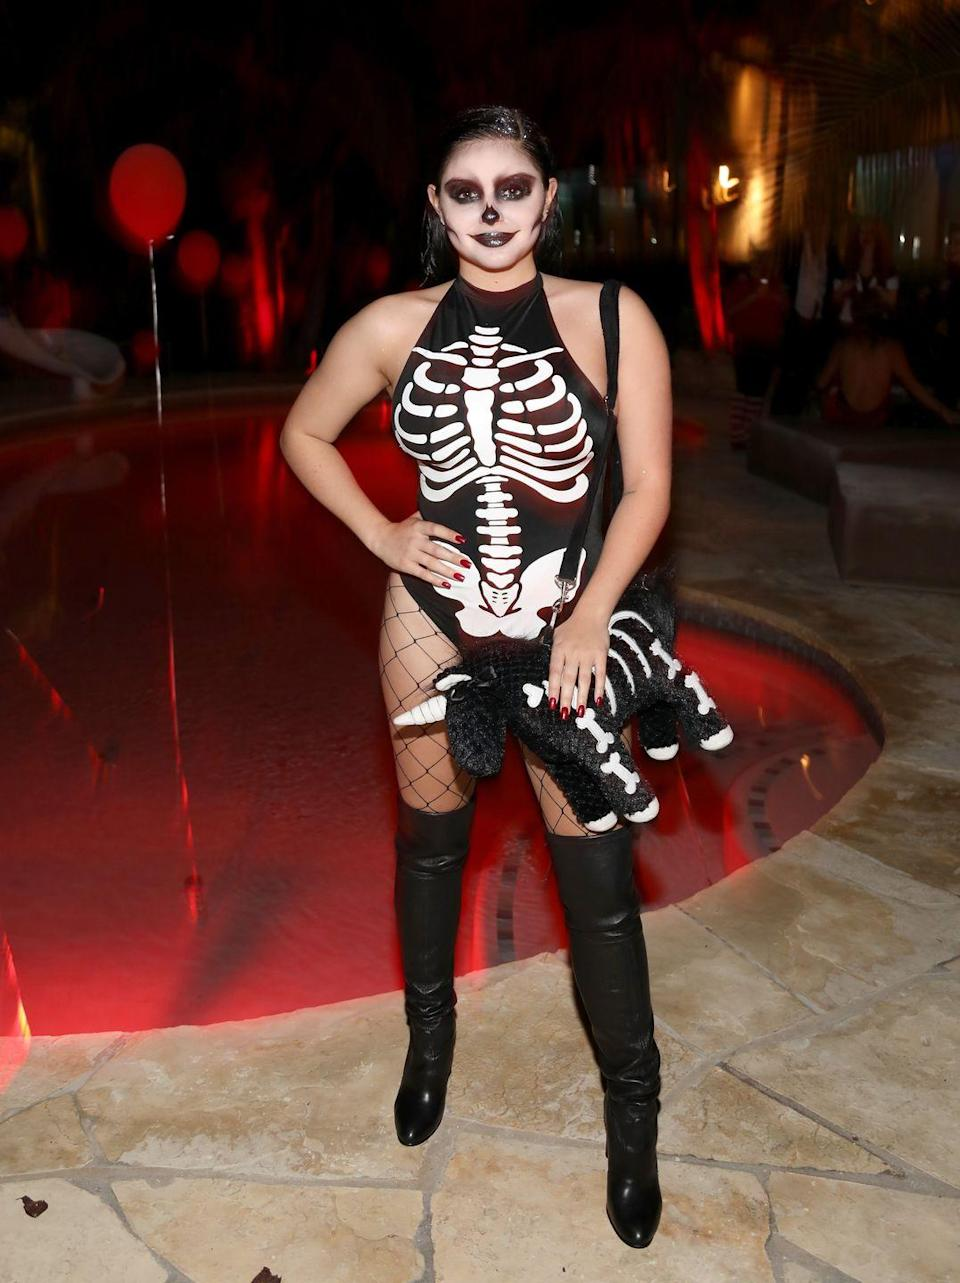 <p>Can't go wrong with a skeleton leotard and some good old face paint.</p>